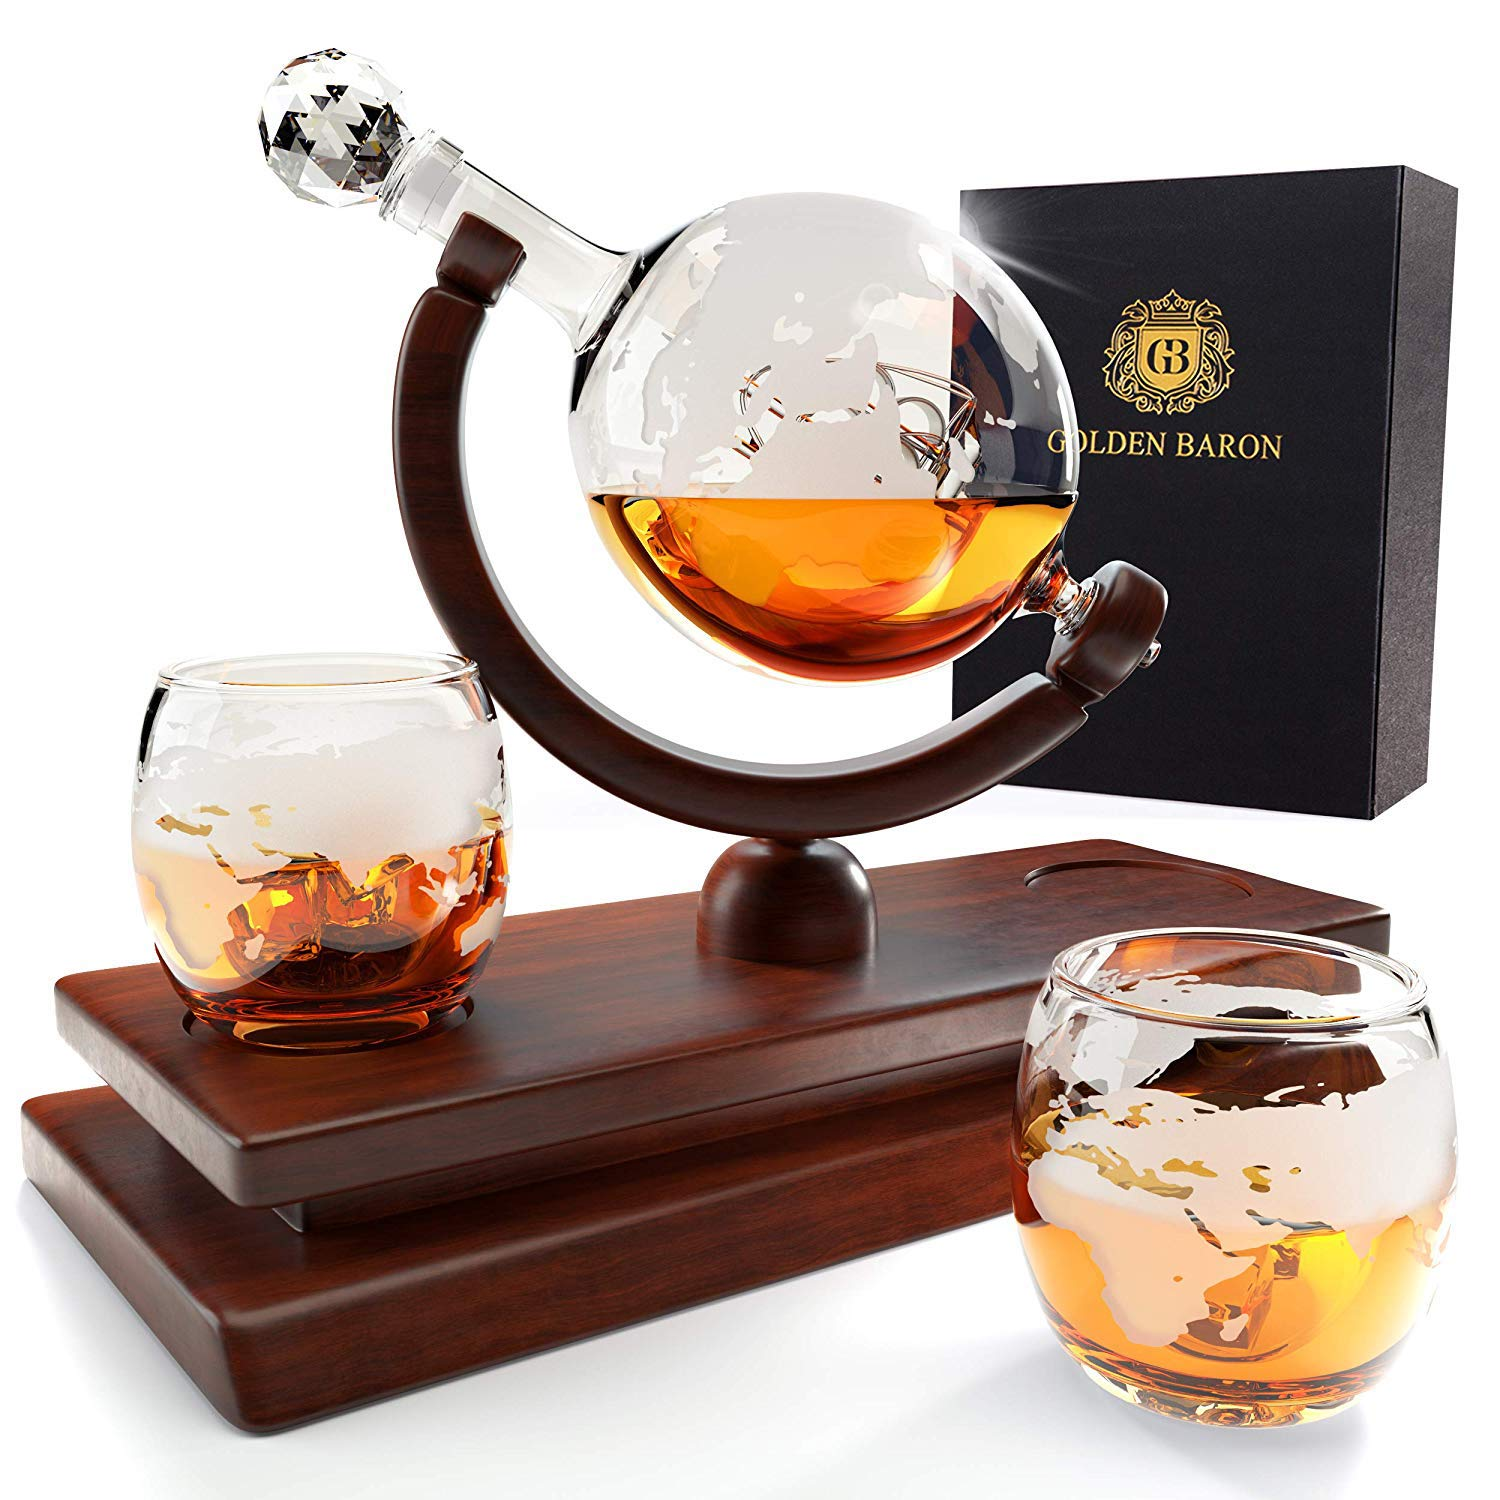 Globe Whiskey Decanter and Glass Set - Double Thickness Glass and Crystal Stopper - Liquor Decanter and Dispenser by Golden Baron (Image #1)